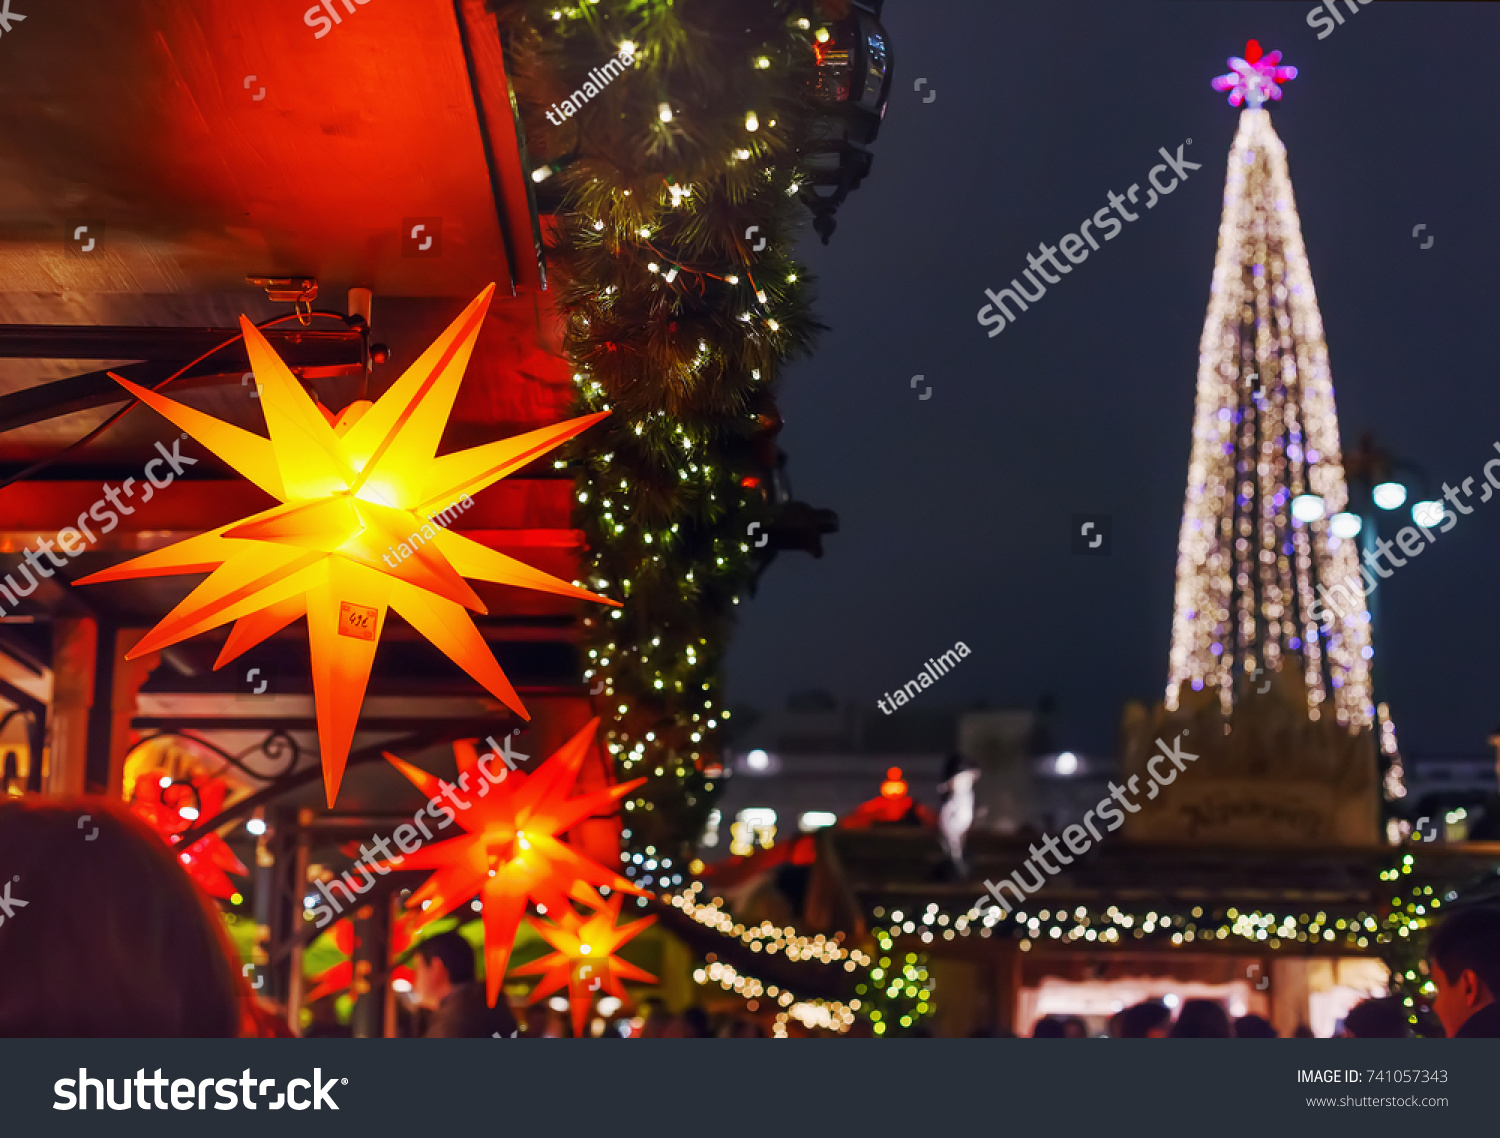 Colorful stars sale lights xmas tree stock photo 741057343 colorful stars sale lights xmas tree stock photo 741057343 shutterstock mozeypictures Image collections